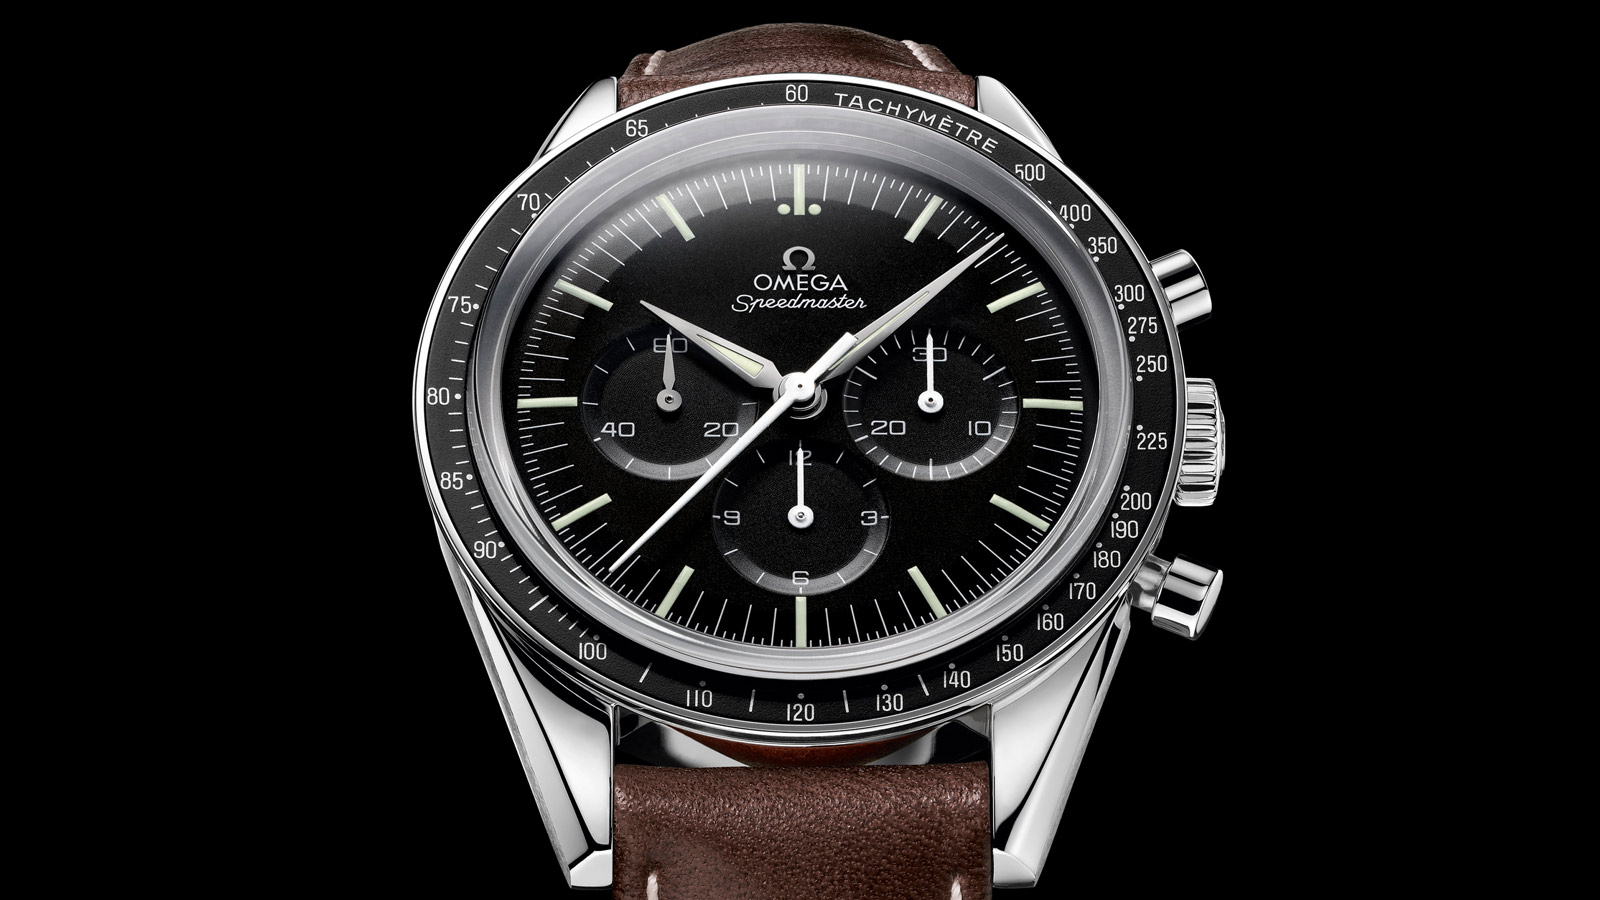 Speedmaster ムーンウォッチ Moonwatch Chronograph 39.7 mm - 311.32.40.30.01.001 - ビュー 3